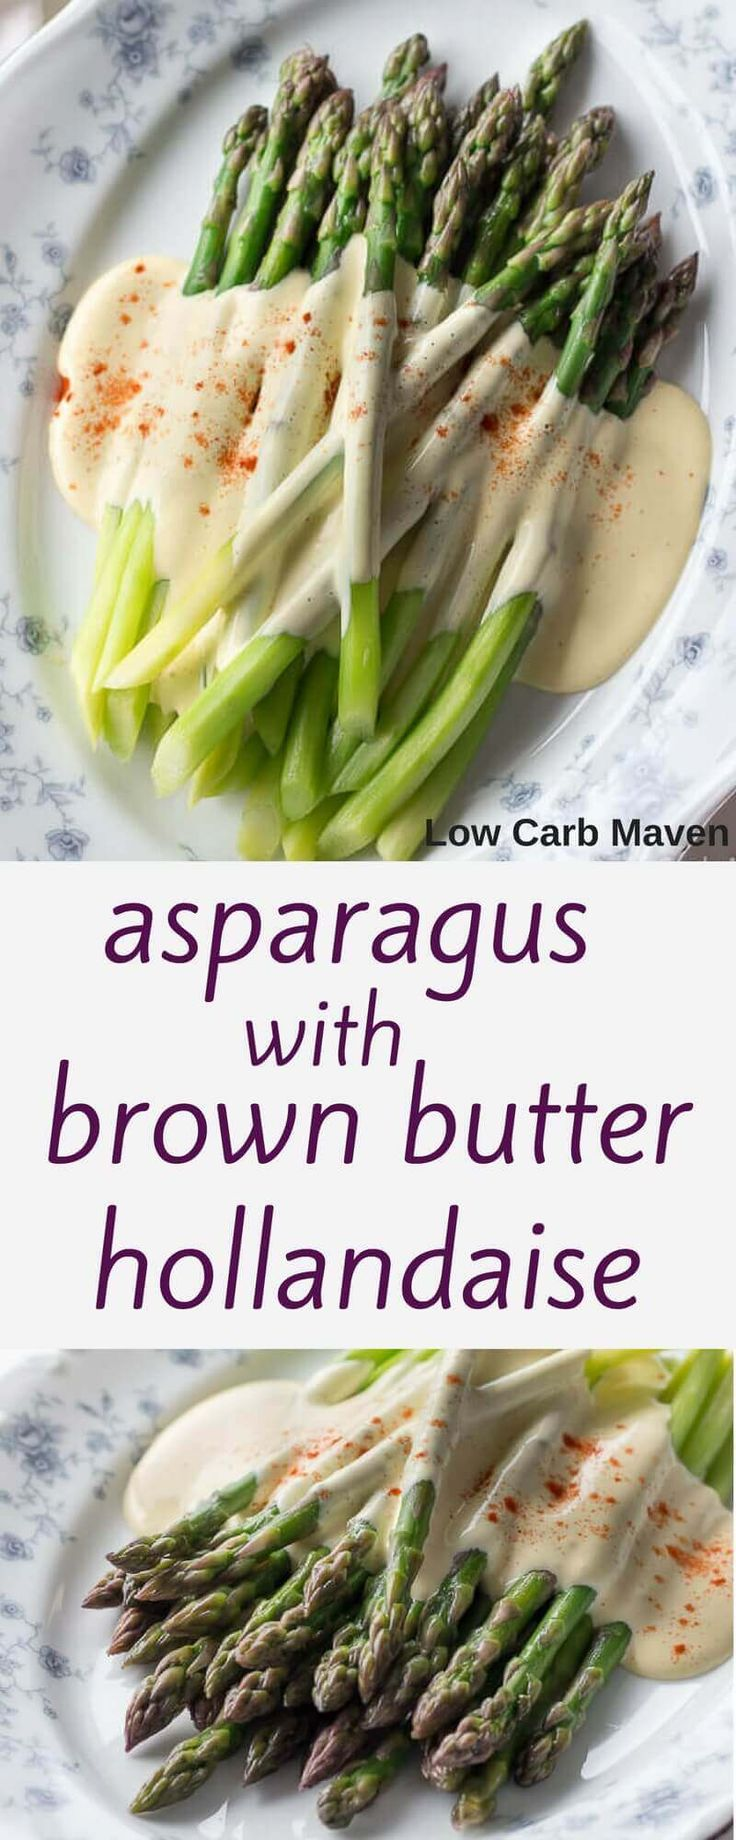 An easy asparagus side dish recipe with tender asparagus and a blender Hollandaise sauce. It's the perfect vegetable side for low carb diets. This recipe is also vegetarian, gluten free and paleo!